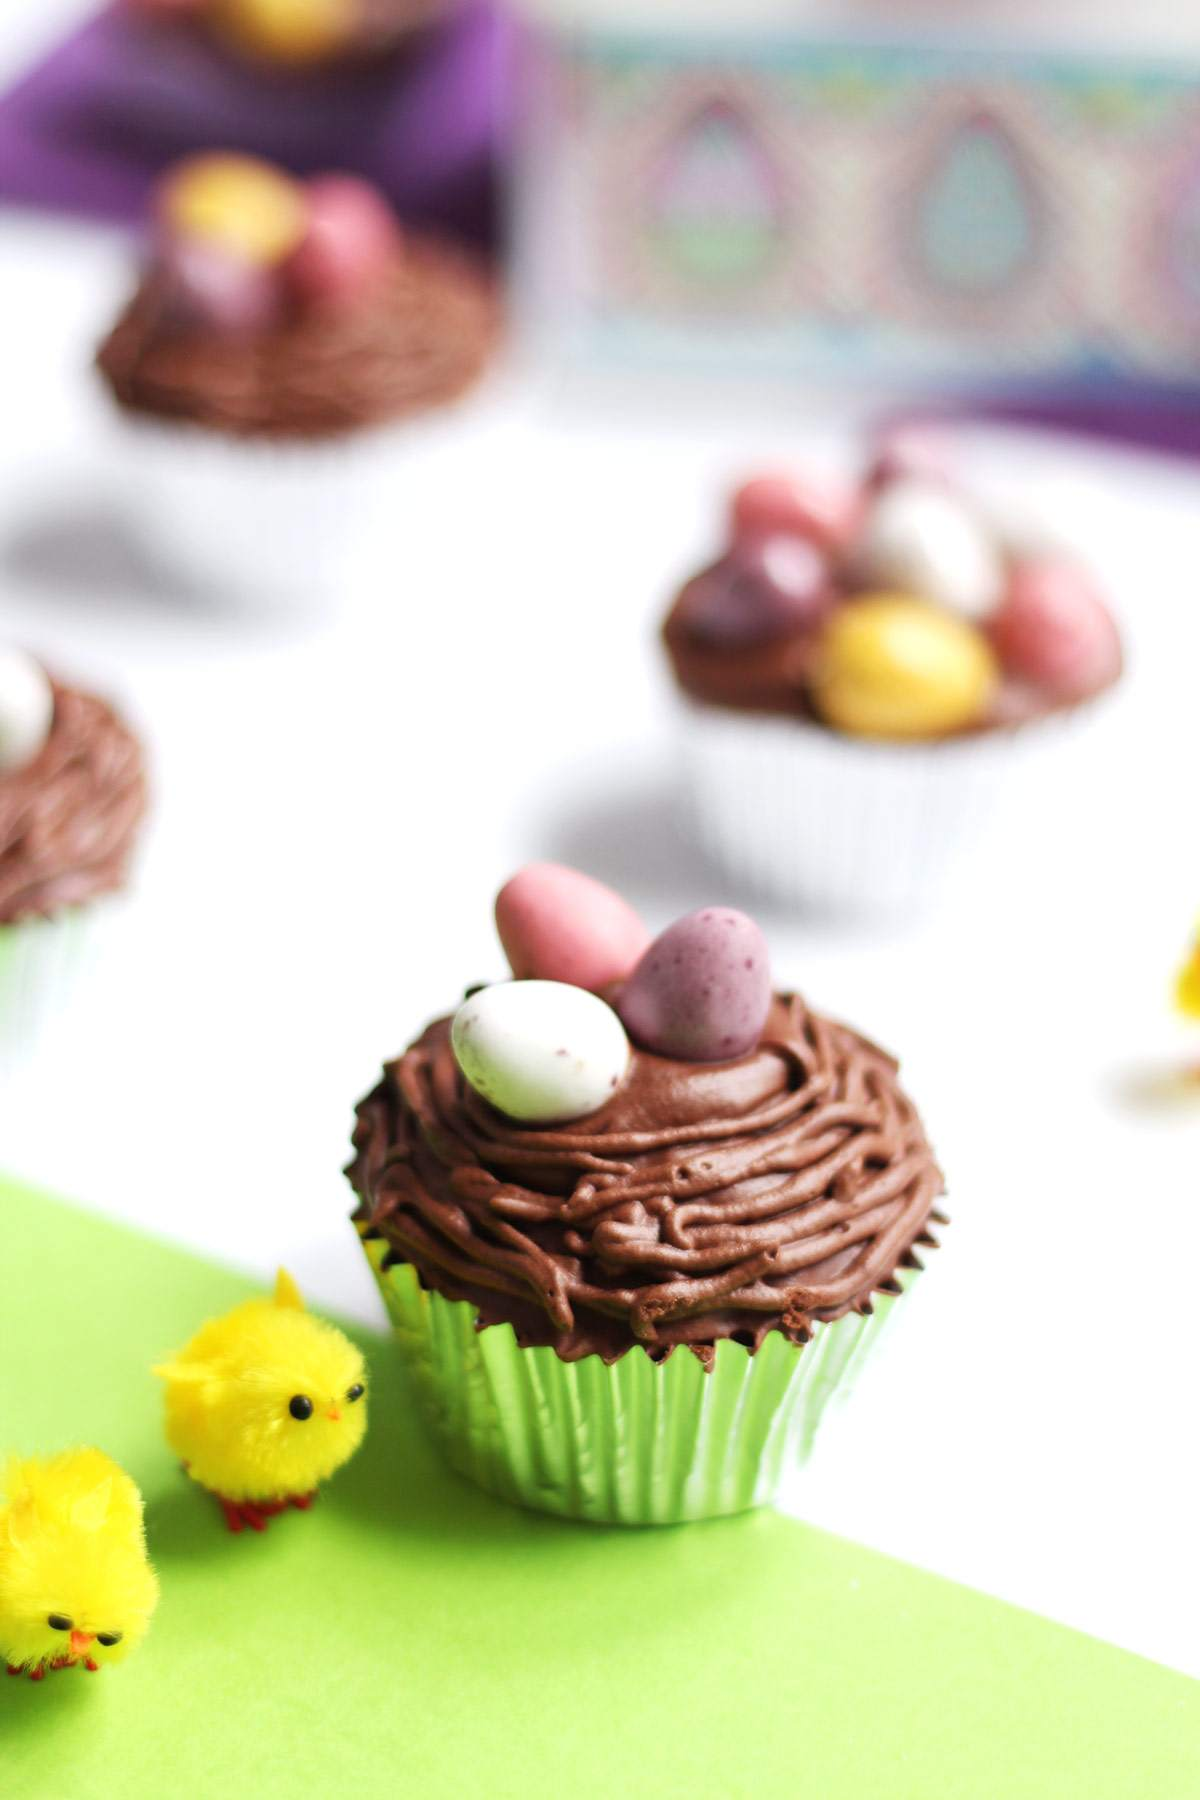 easter-chocolate-cupcakes-mini-eggs-recipe-nest-biscuiteers-decorated-egg-biscuits-review